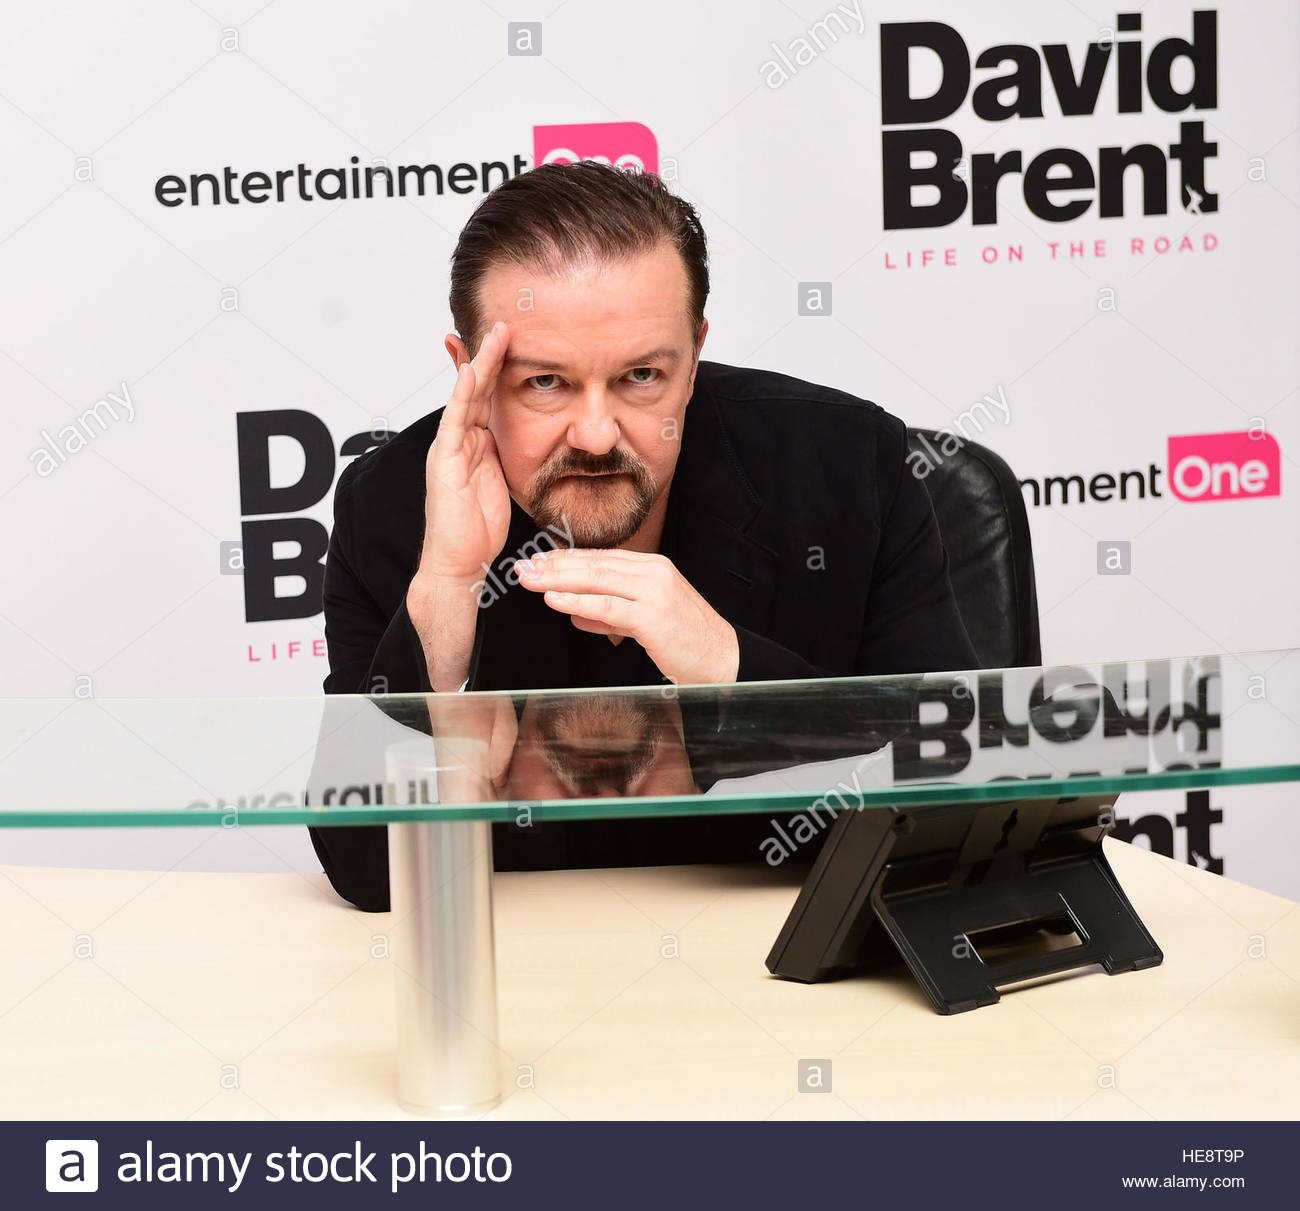 File photo dated 10/08/16 of Ricky Gervais attending the world premiere of David Brent: Life On The Road. Bad bosses - Stock Image